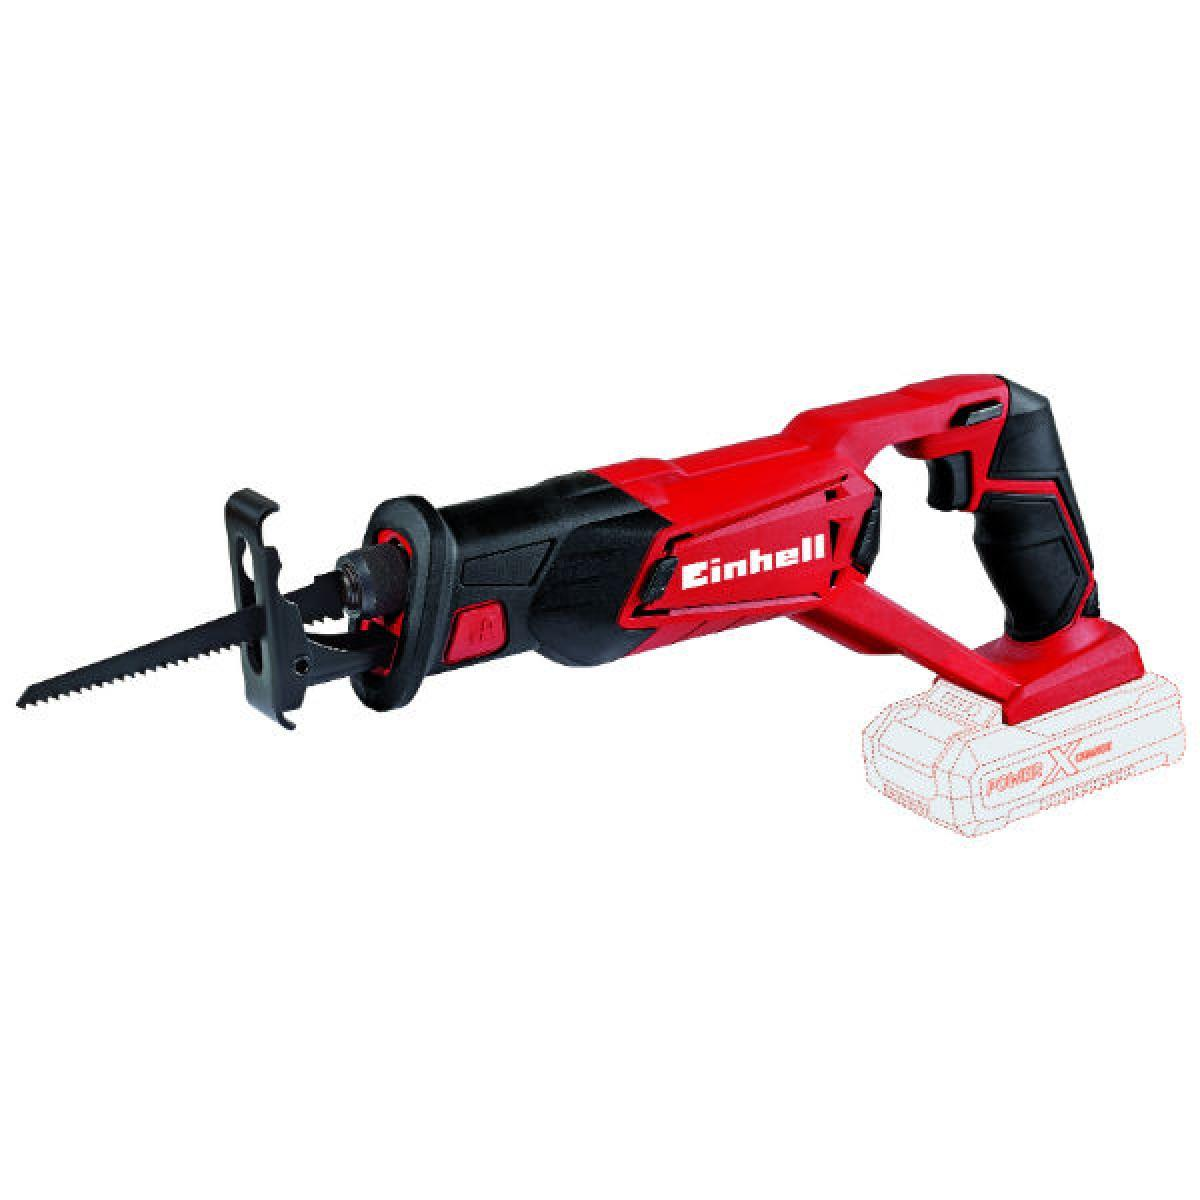 Einhell power x change cordless reciprocating saw greentooth Gallery